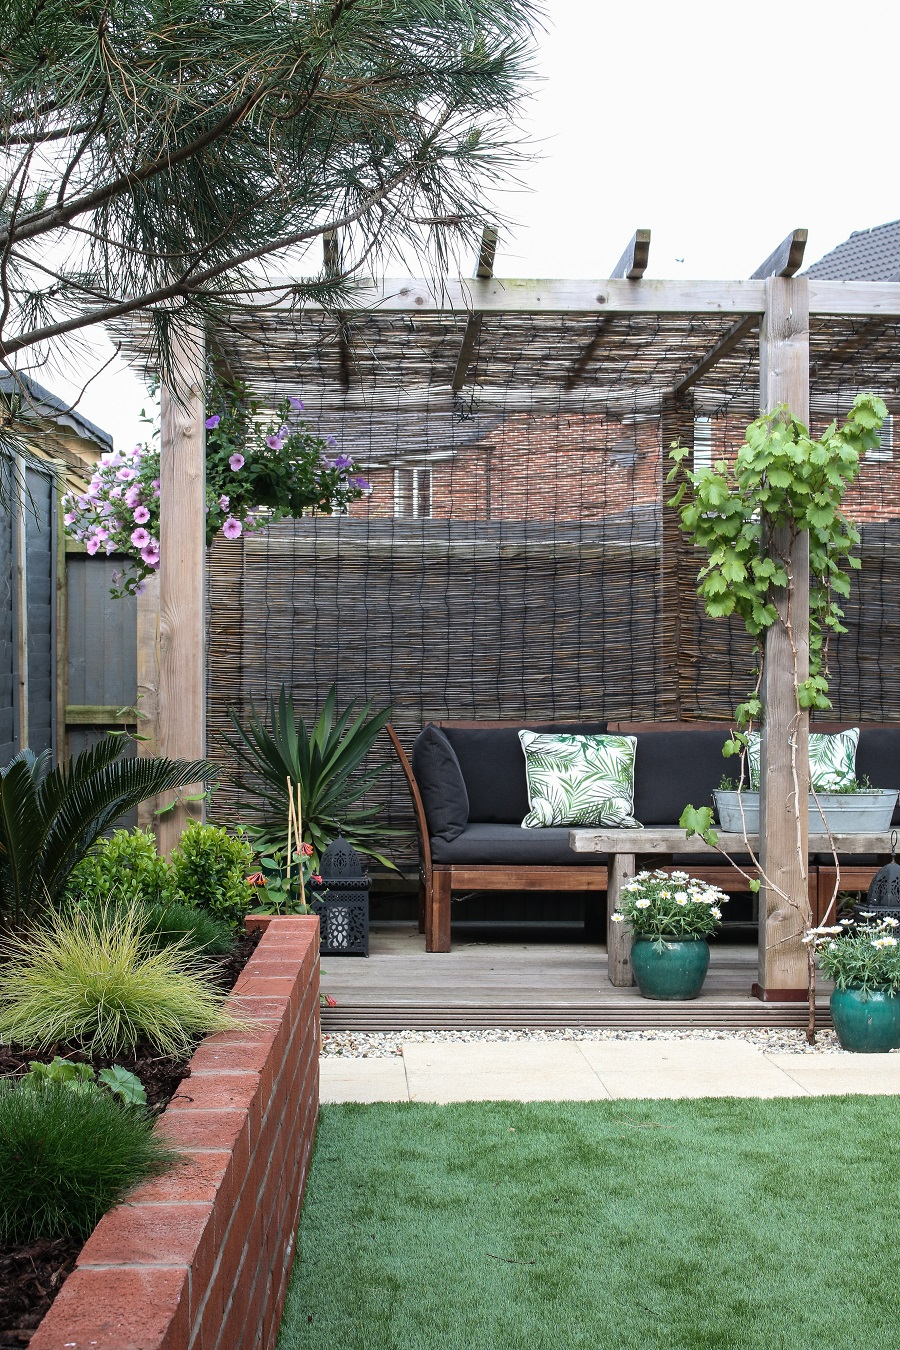 The Landscaped garden - pergola and flowerbed